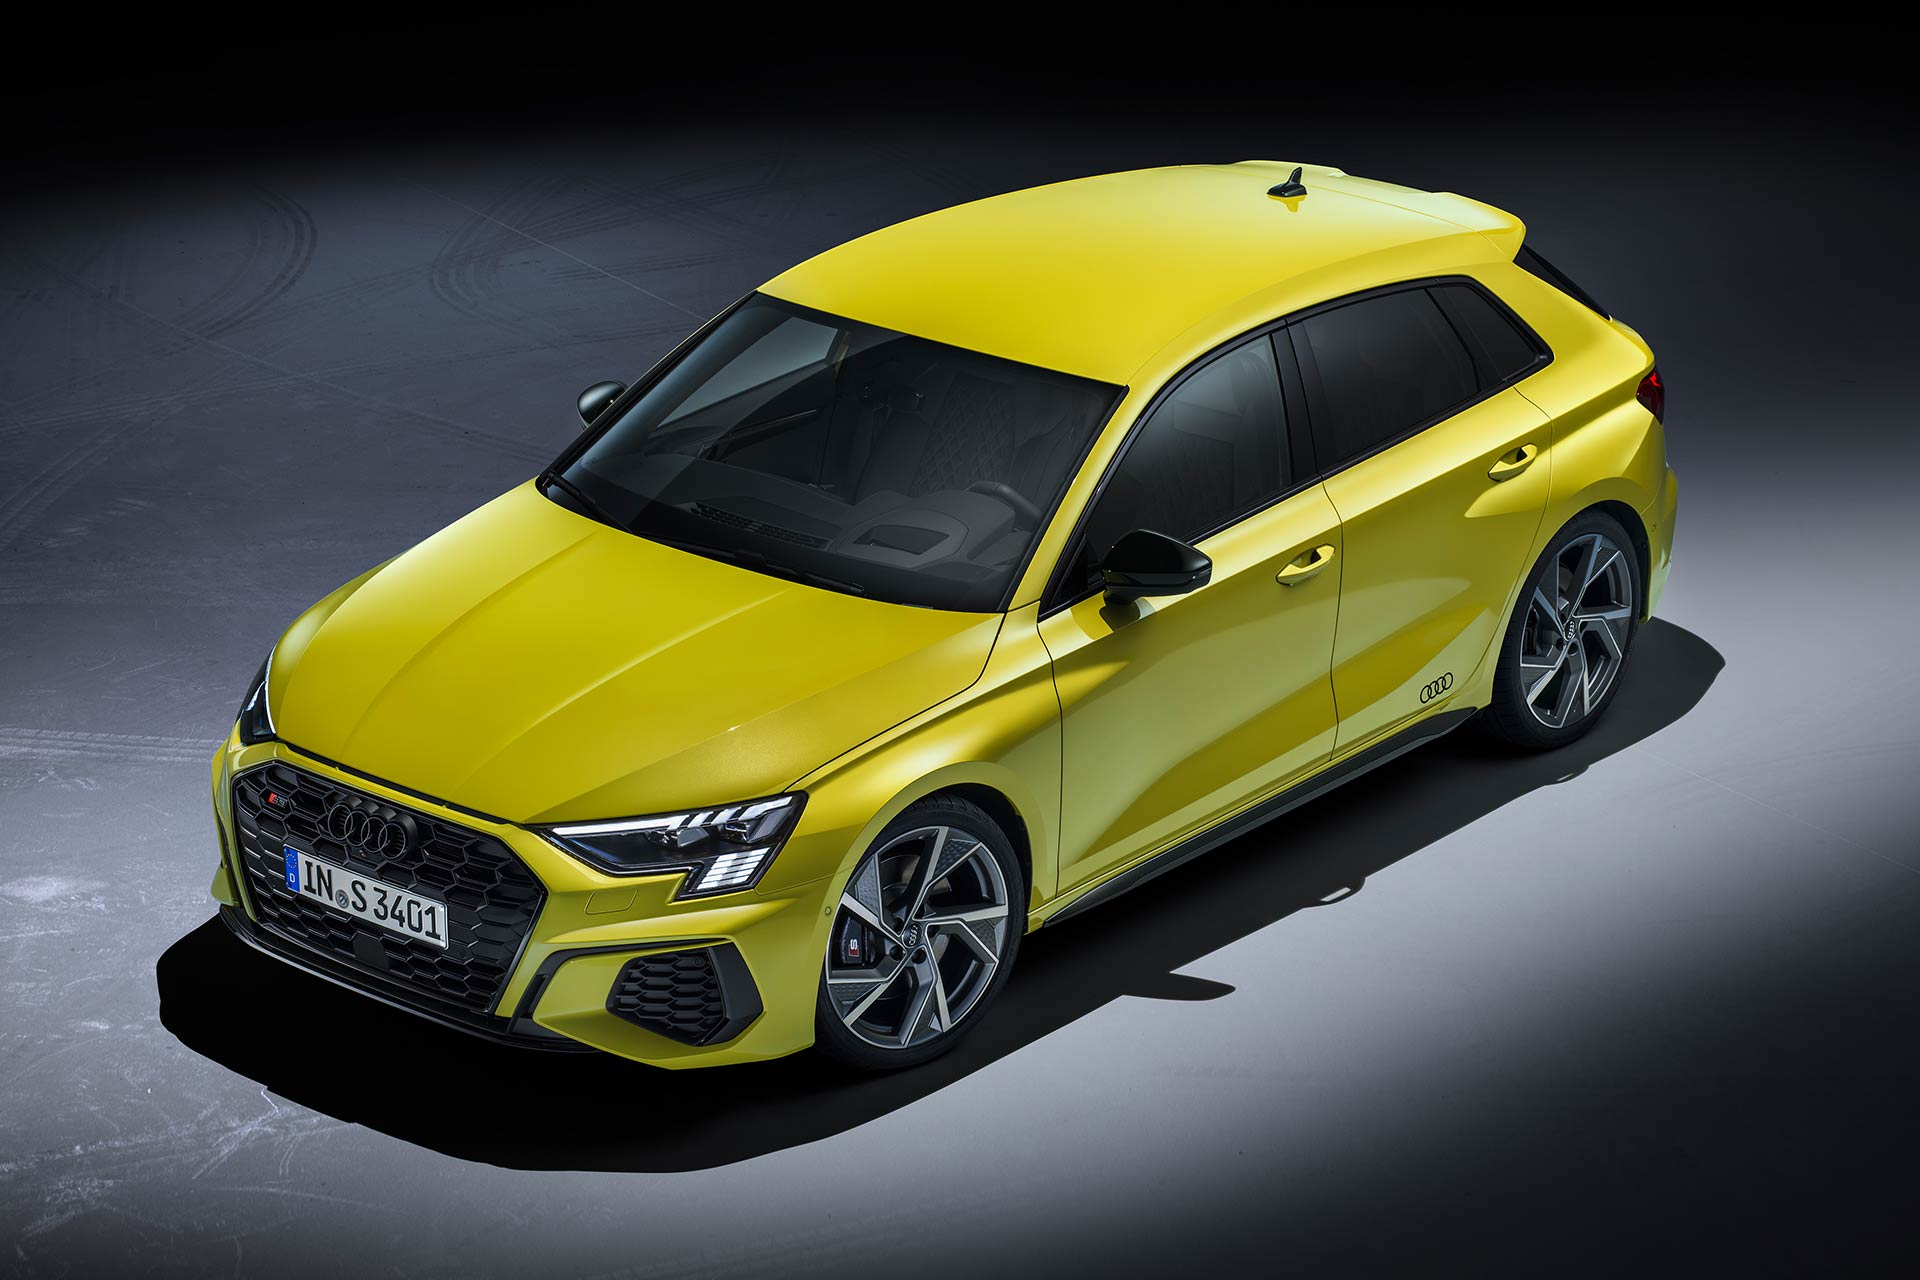 2020 Audi S3 sportback top front